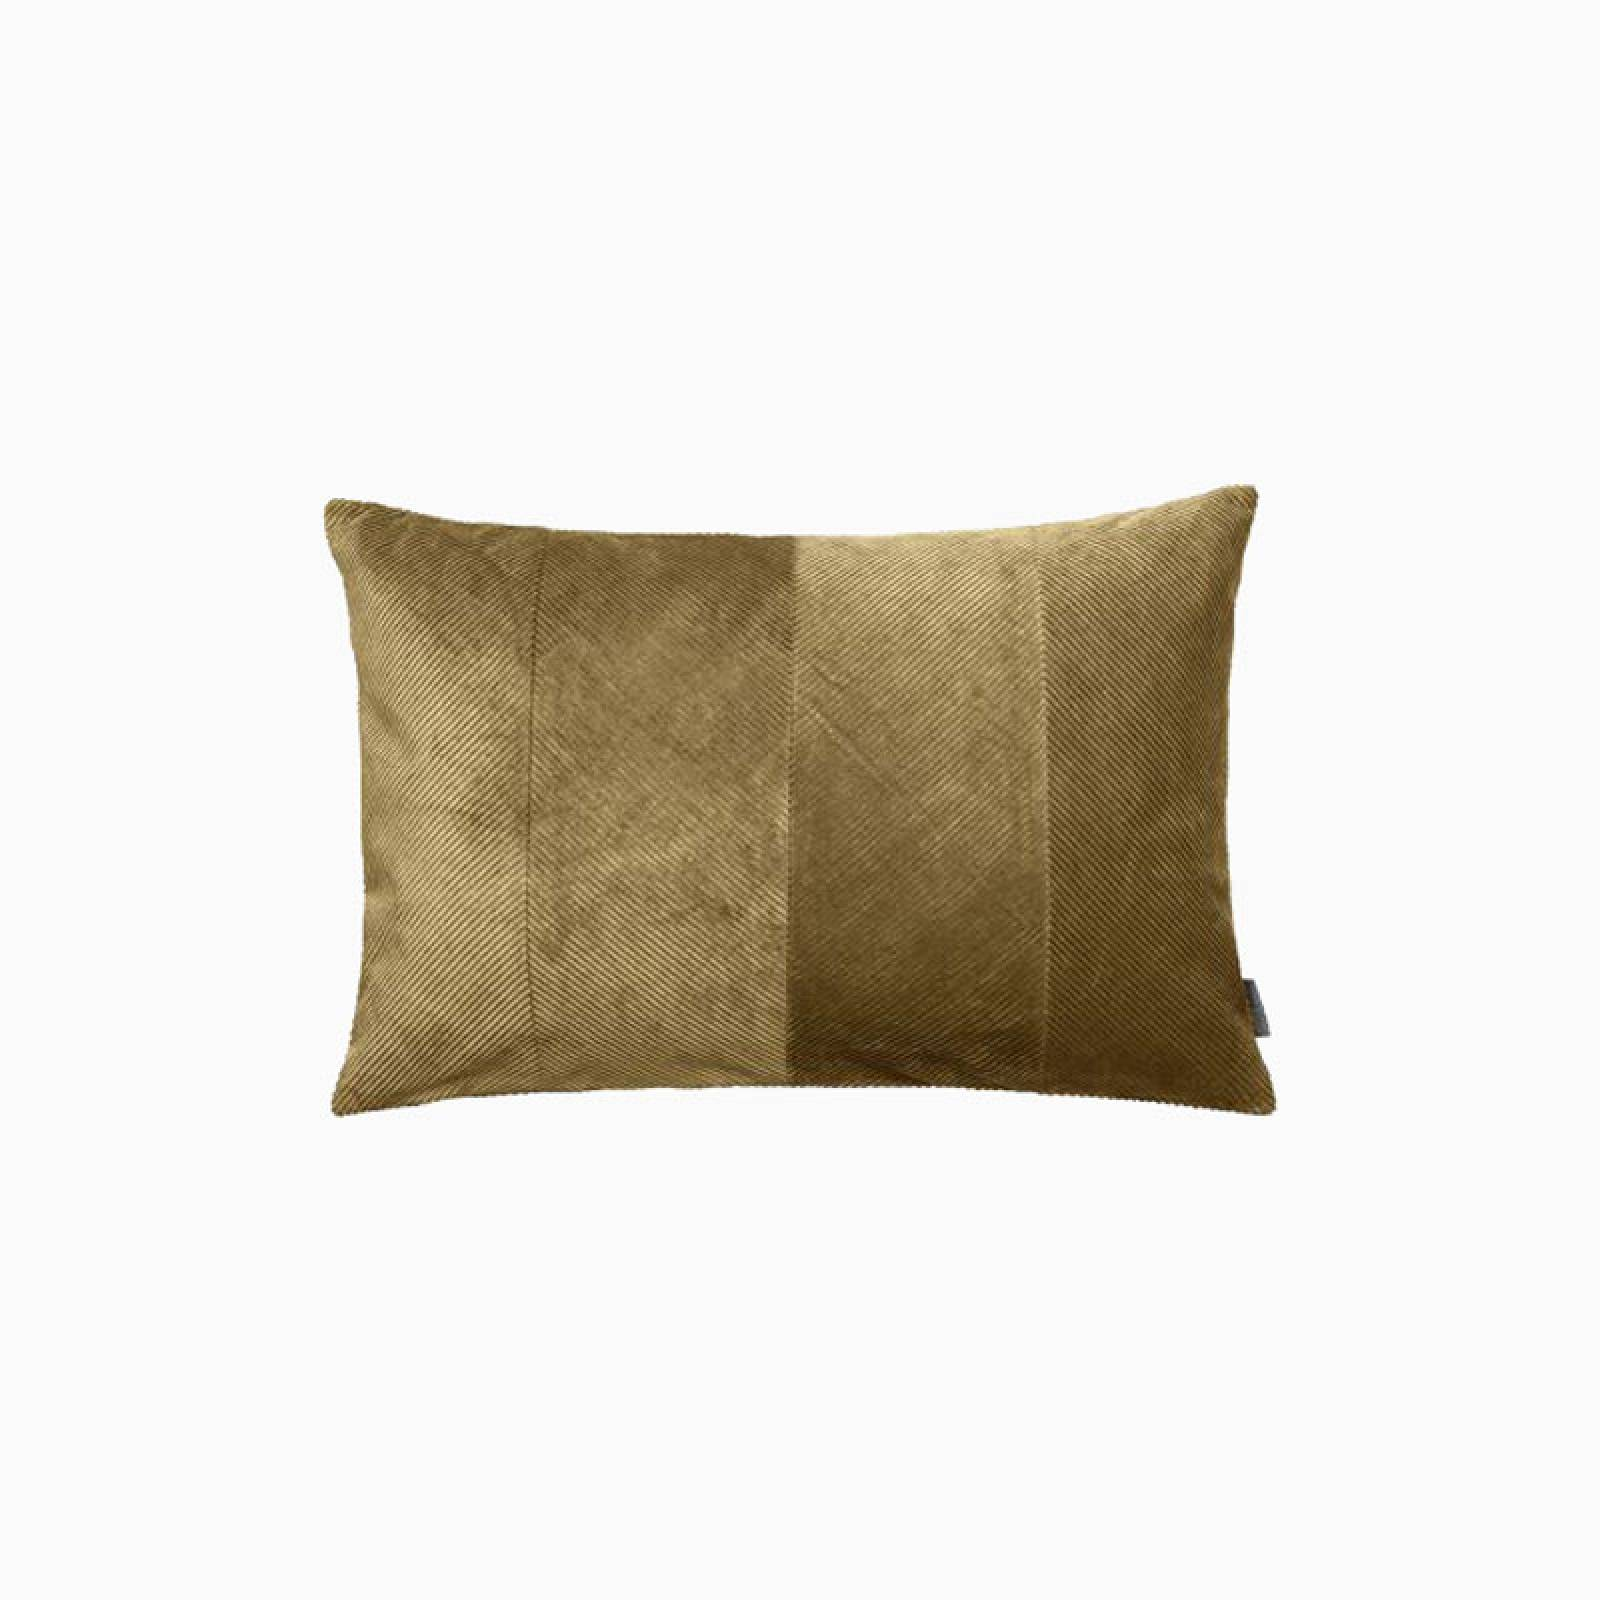 Rectangular Corduroy Cushion In Mustard With Gold Zip thumbnails